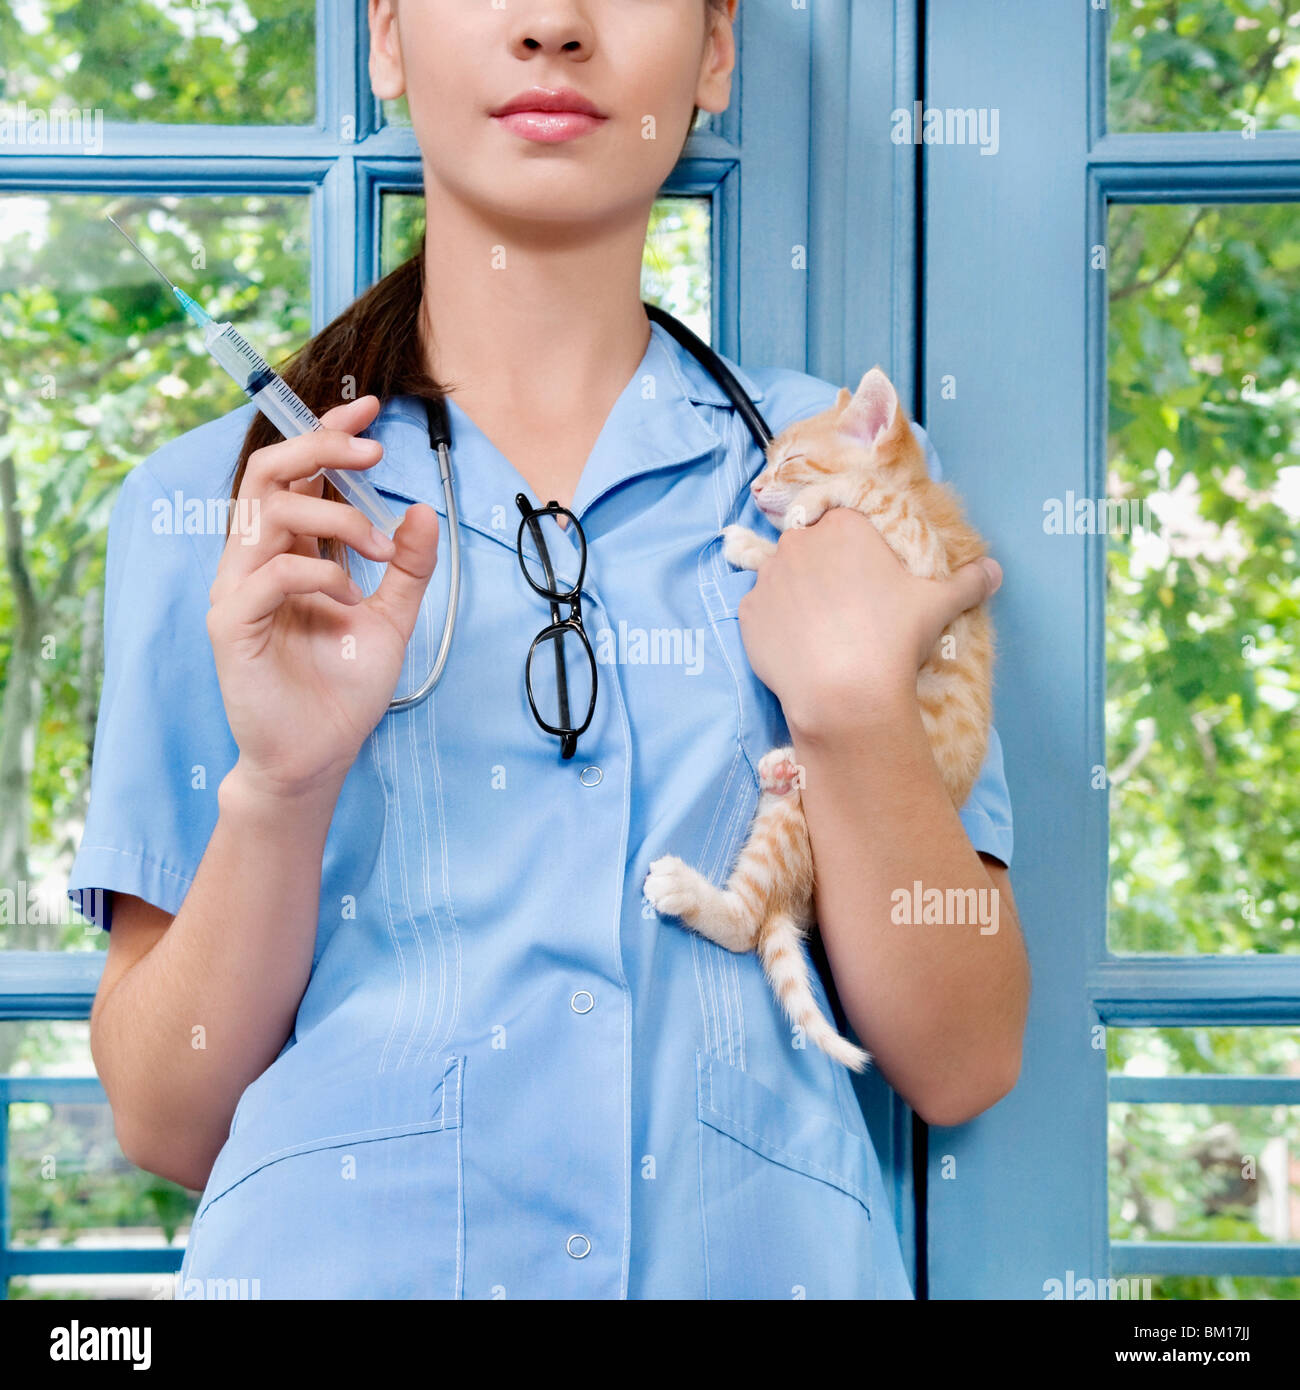 Female vet injecting a cat - Stock Image